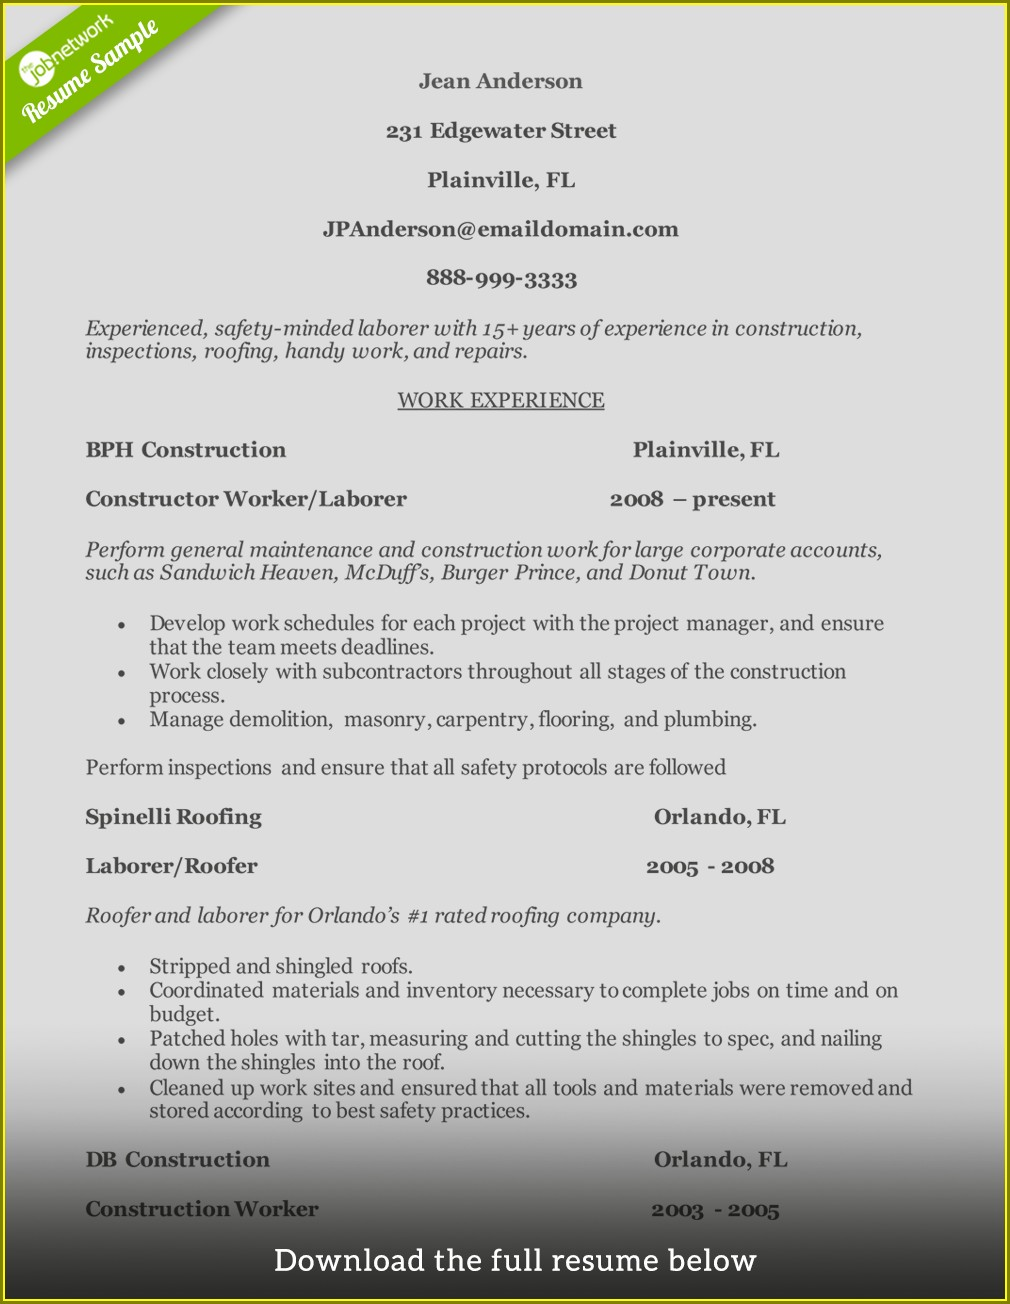 Resume Samples For Construction Workers